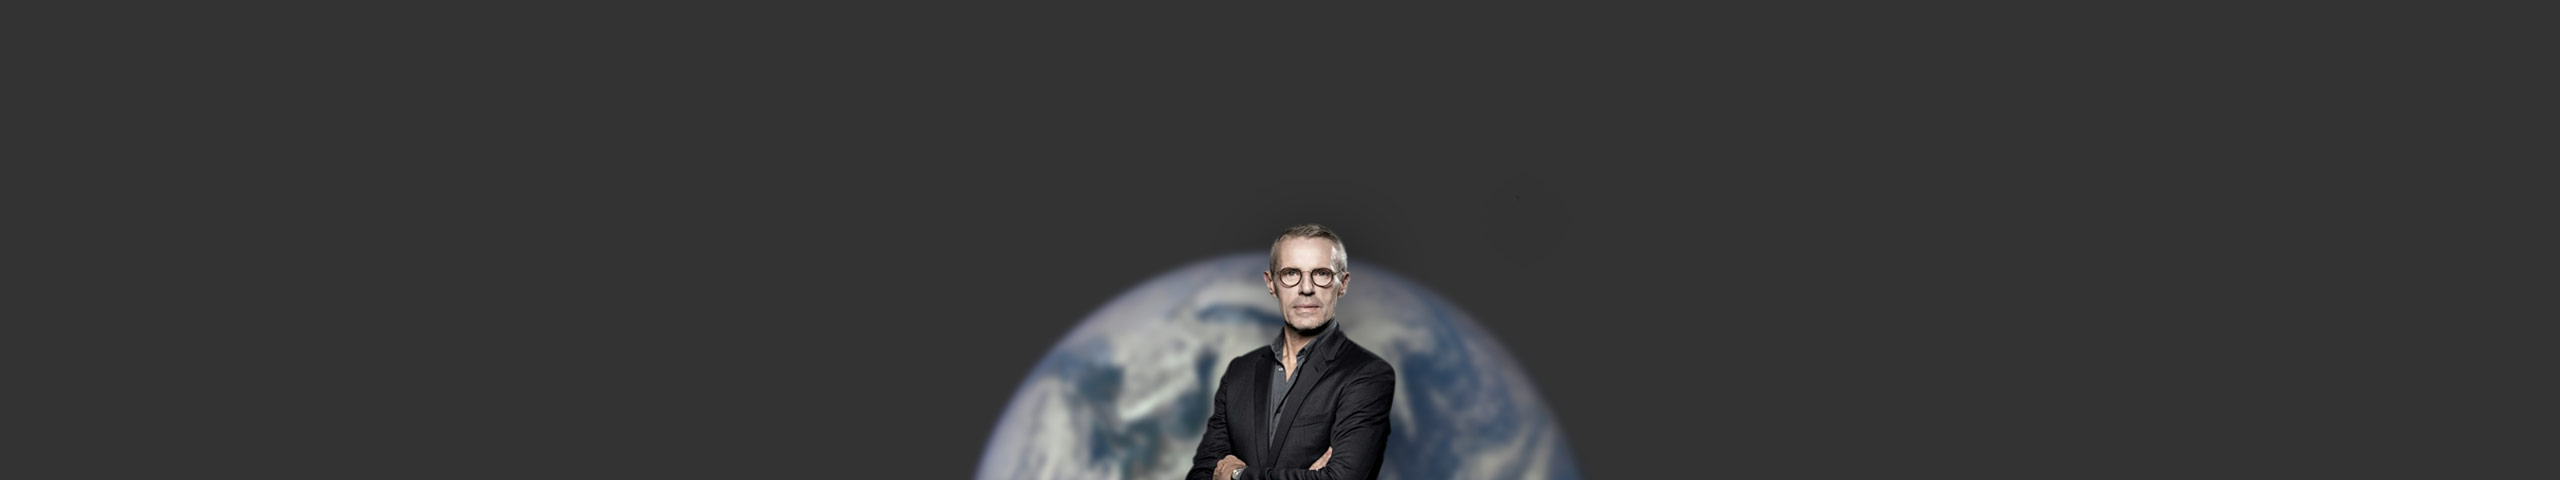 In crusade with the United Nations, Lambert Wilson's commitment